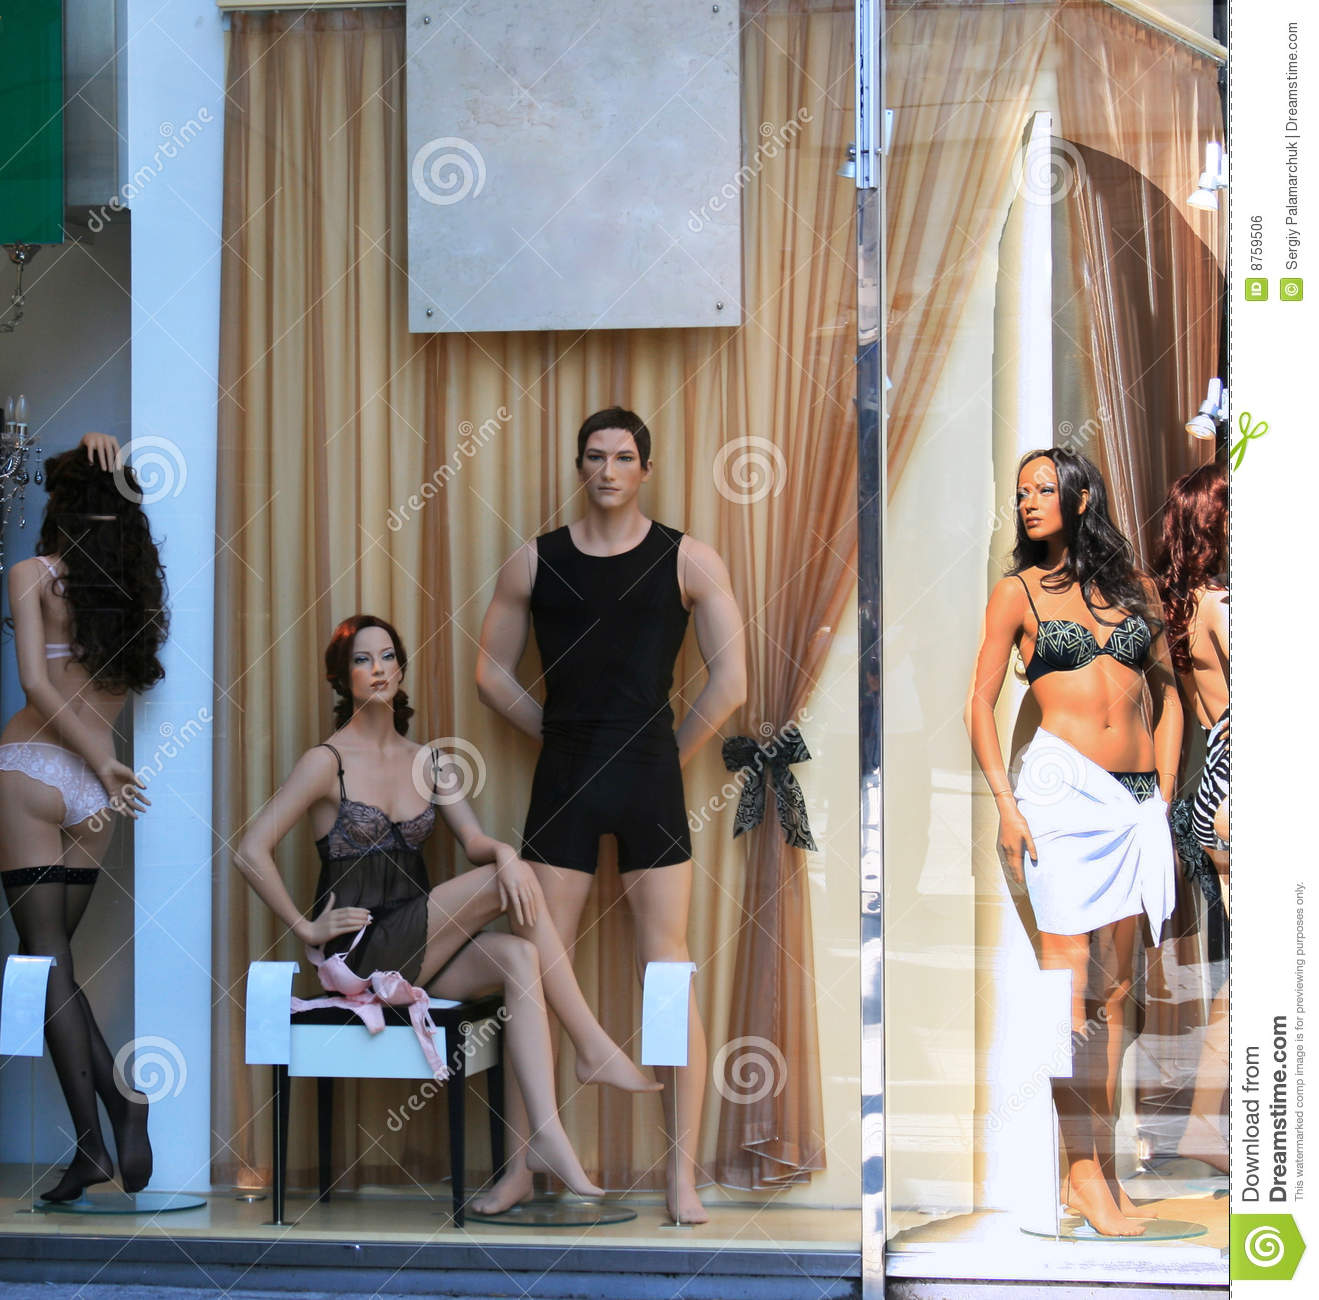 Lingerie Shop Window Royalty Free Stock Image